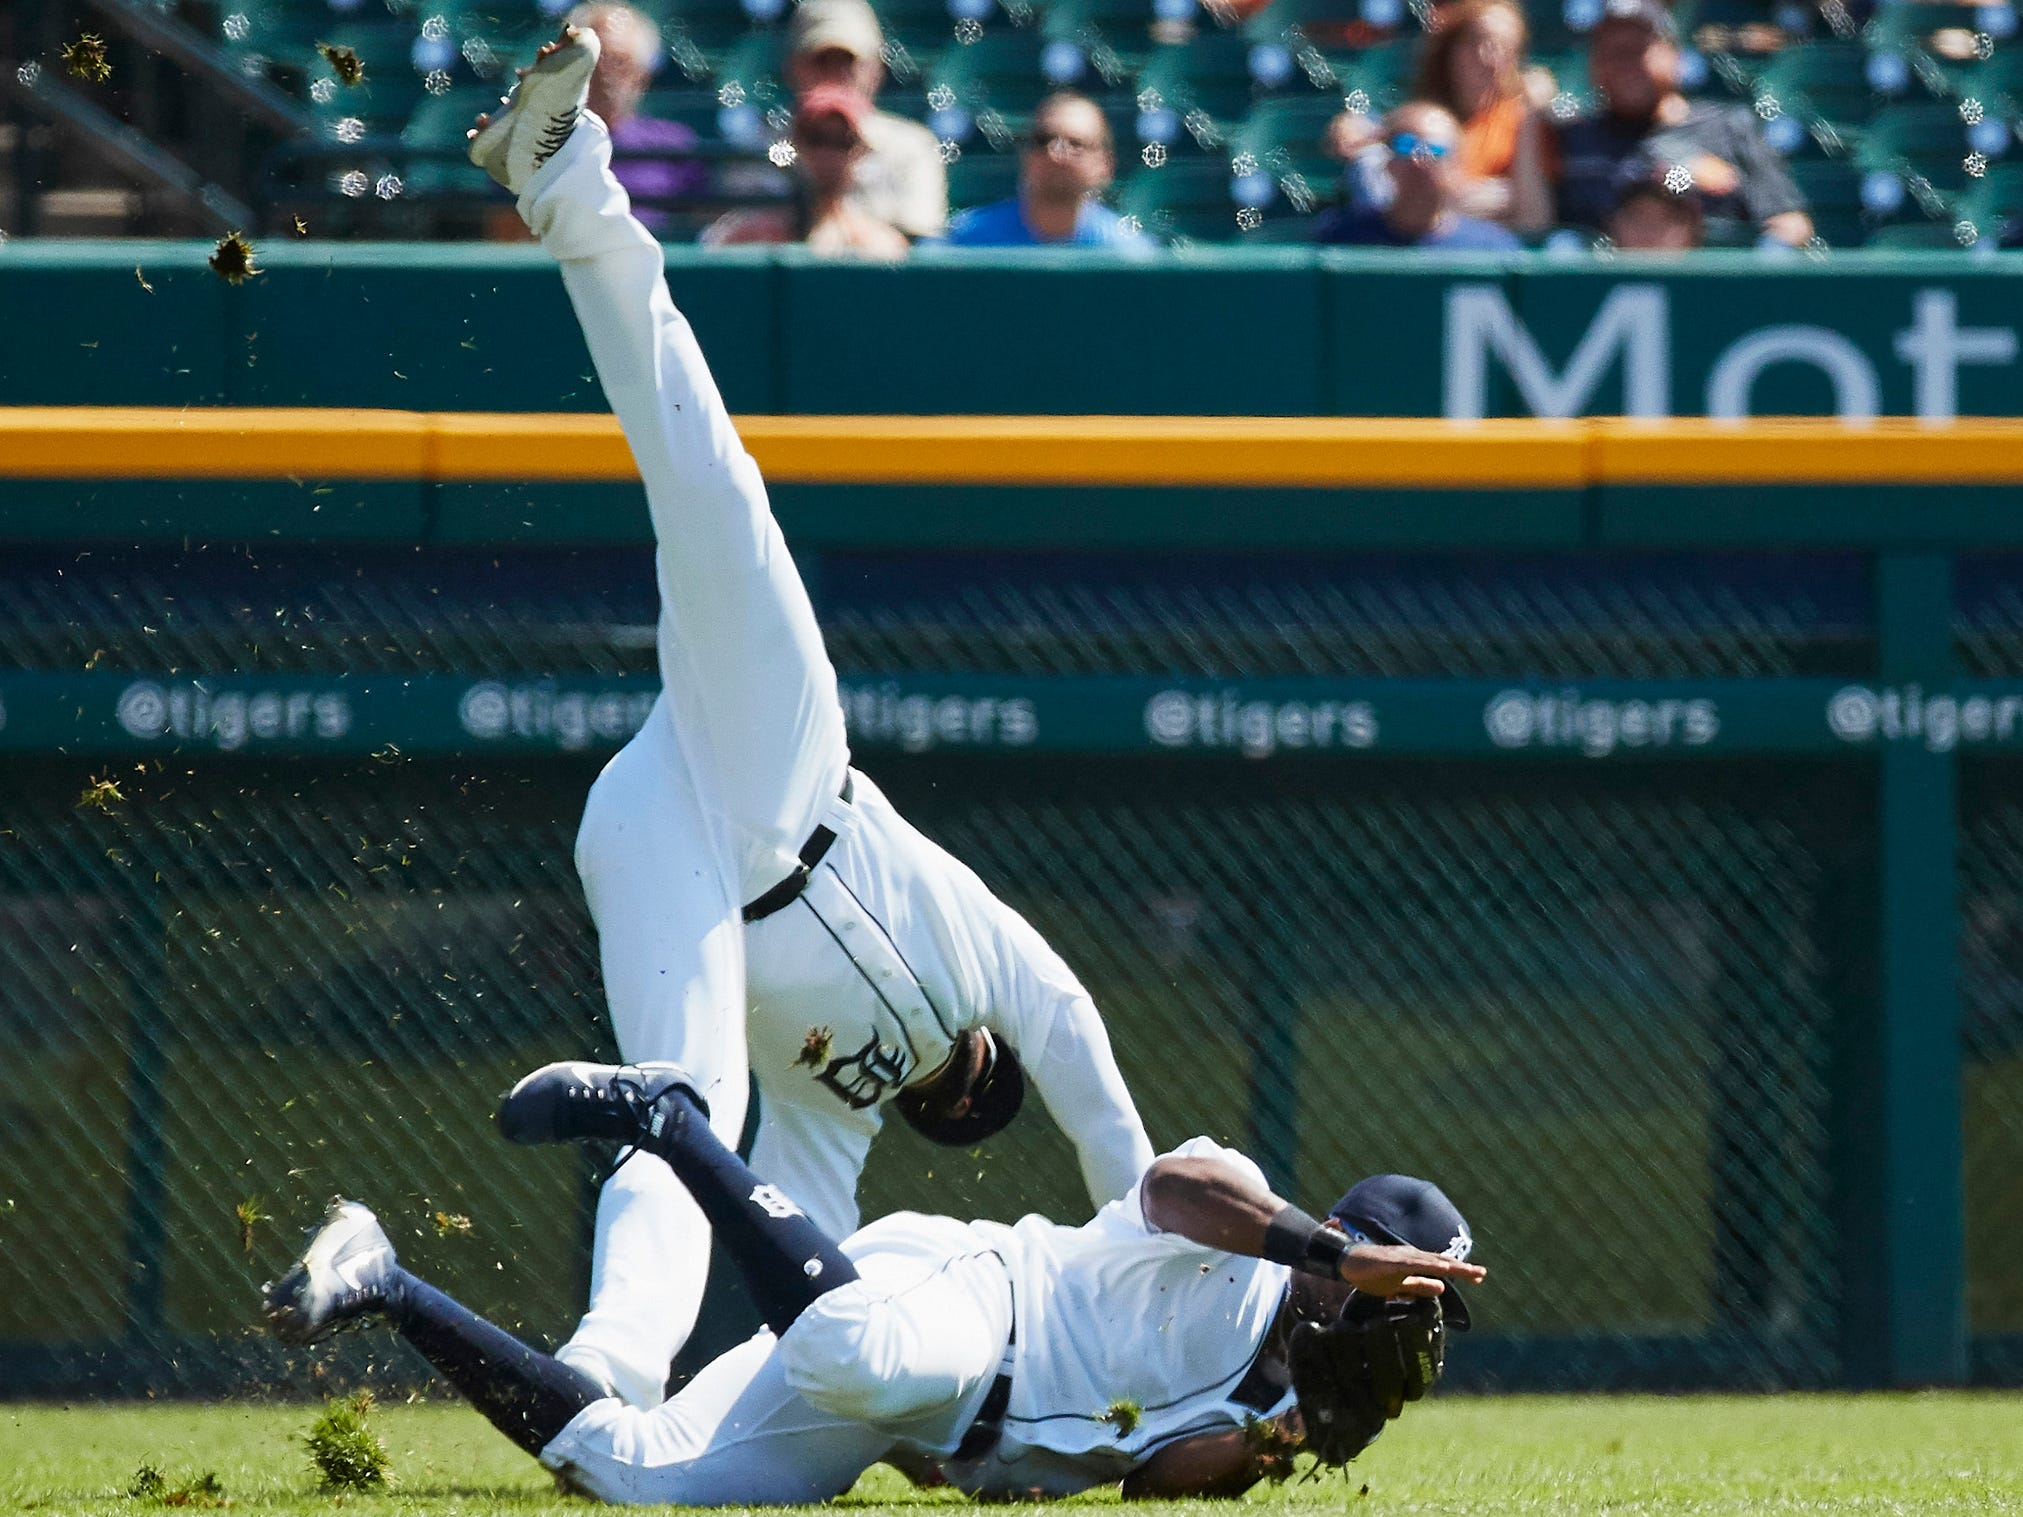 Tigers shortstop Niko Goodrum leaps over a sliding left fielder Christin Stewart during the second inning on Wednesday, Sept. 12, 2018, at Comerica Park.